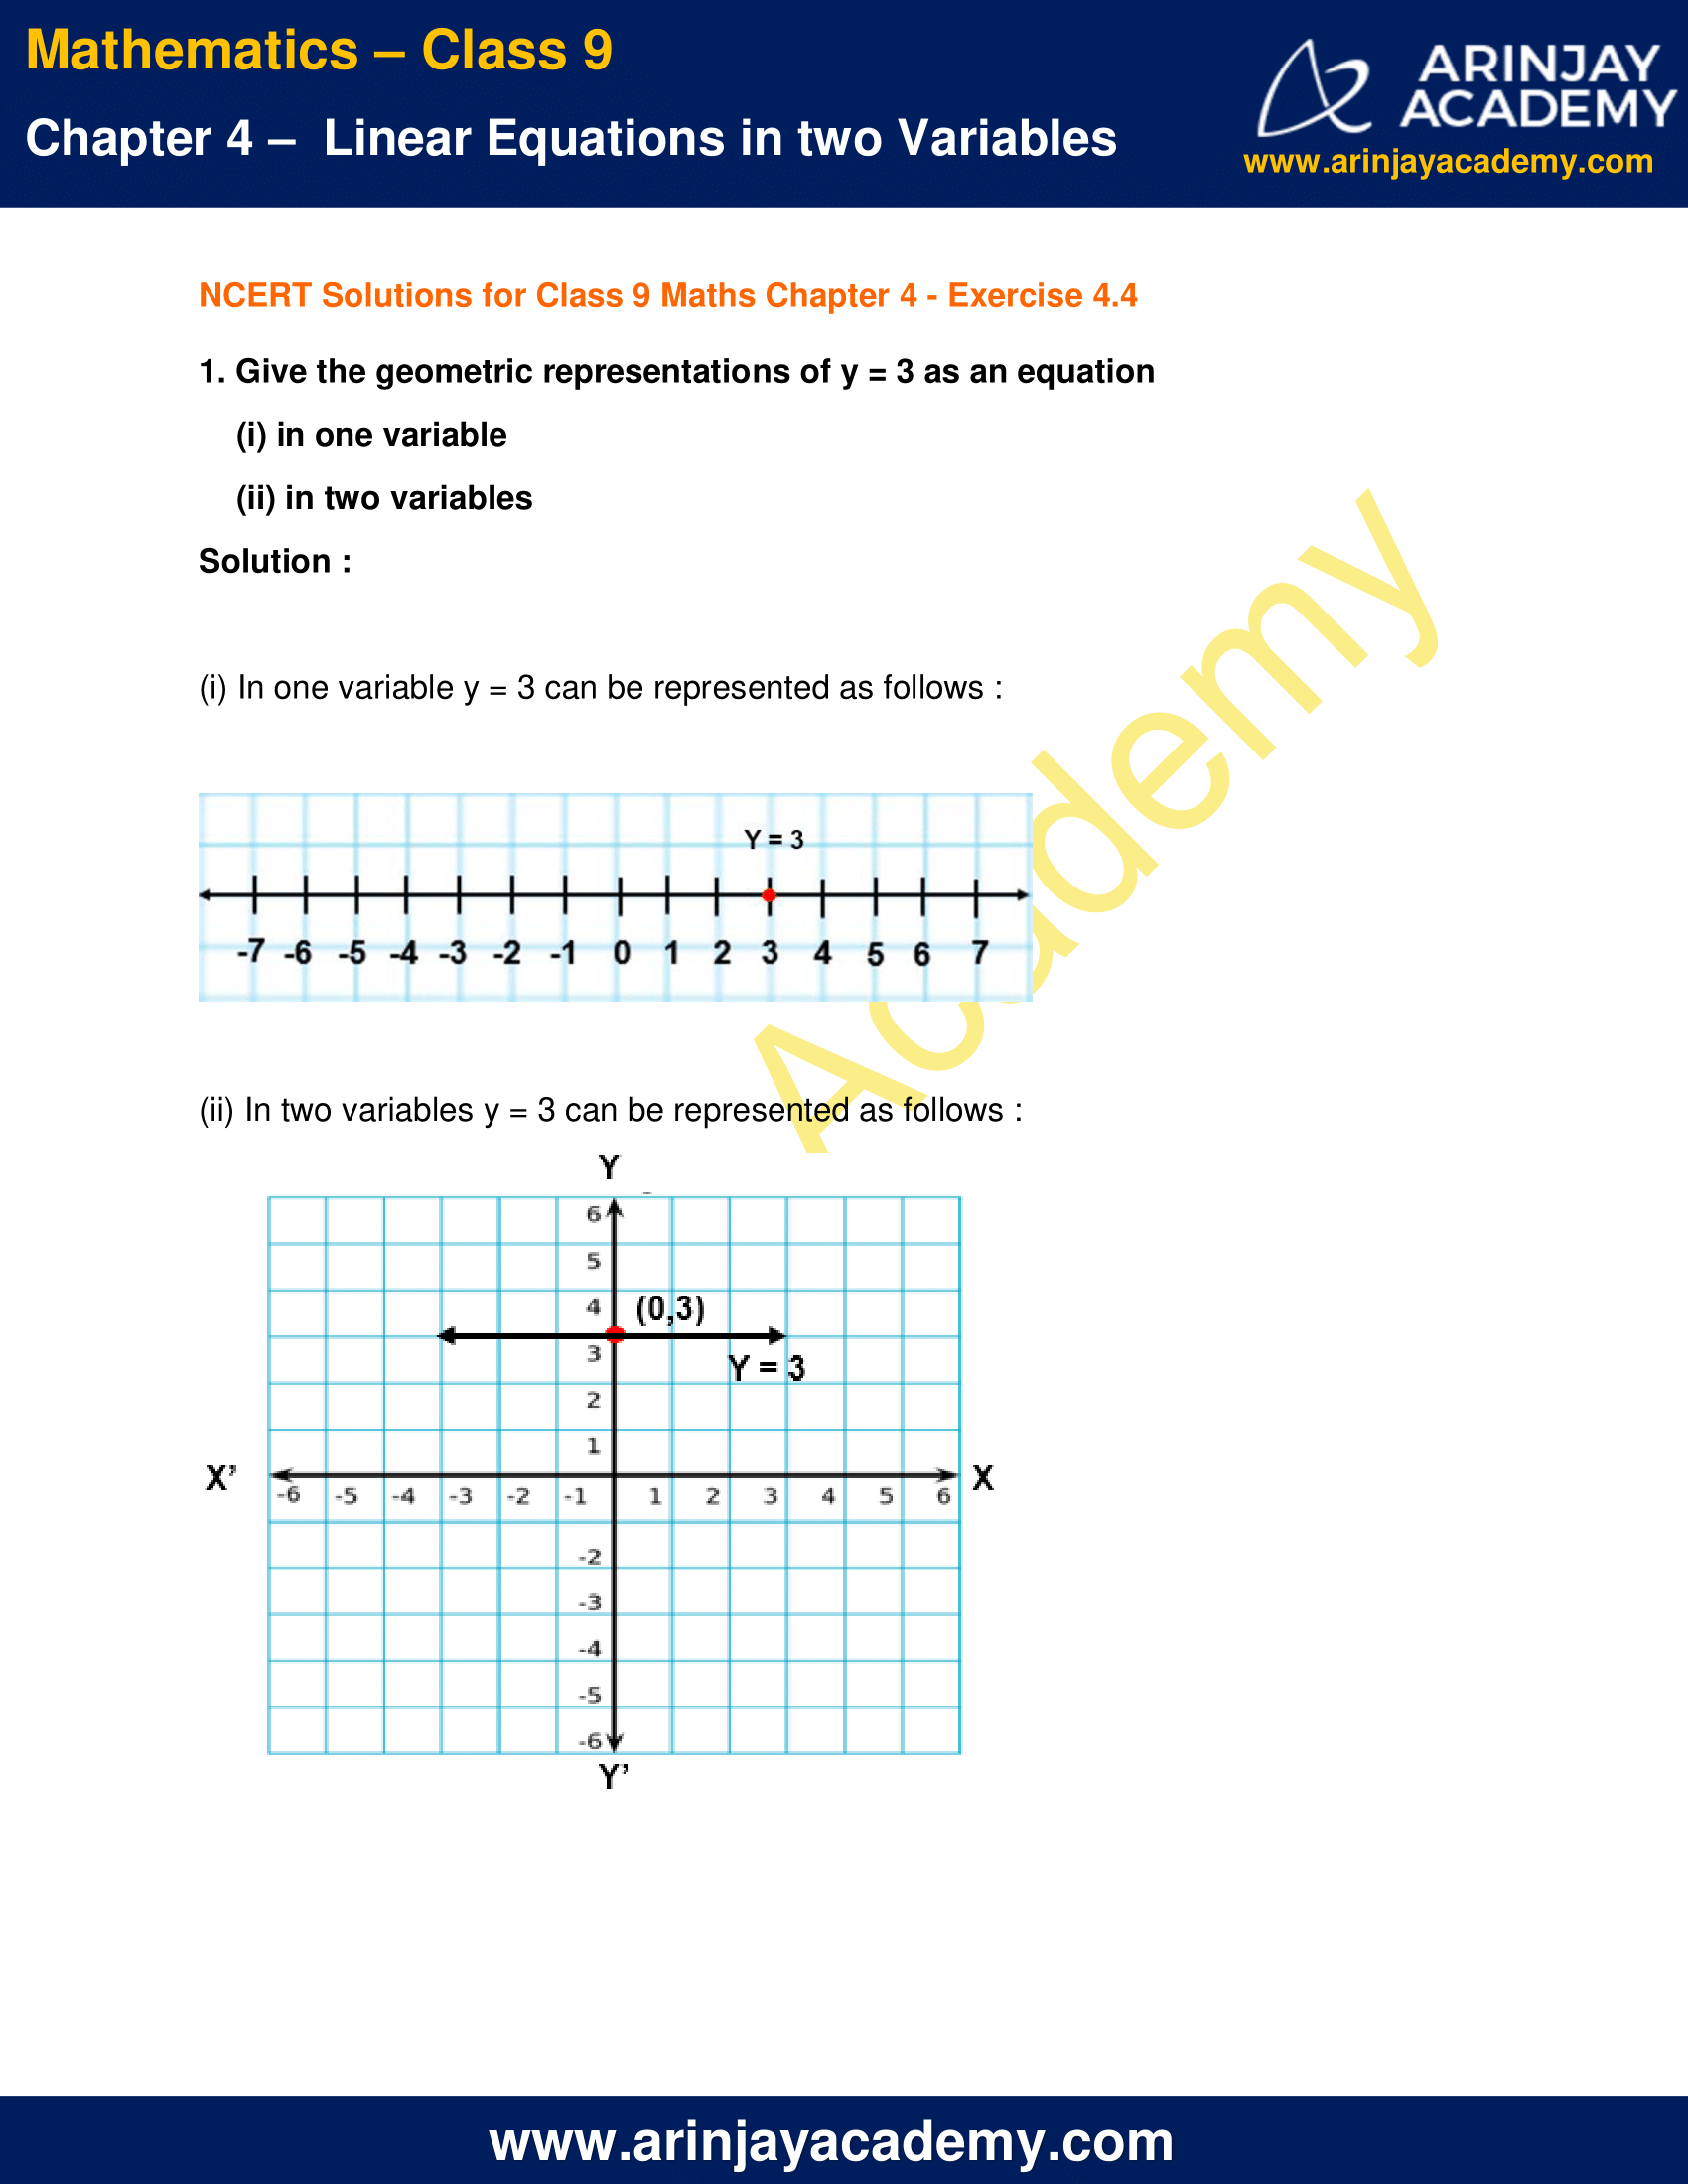 NCERT Solutions for Class 9 Maths Chapter 4 Exercise 4.4 image 1